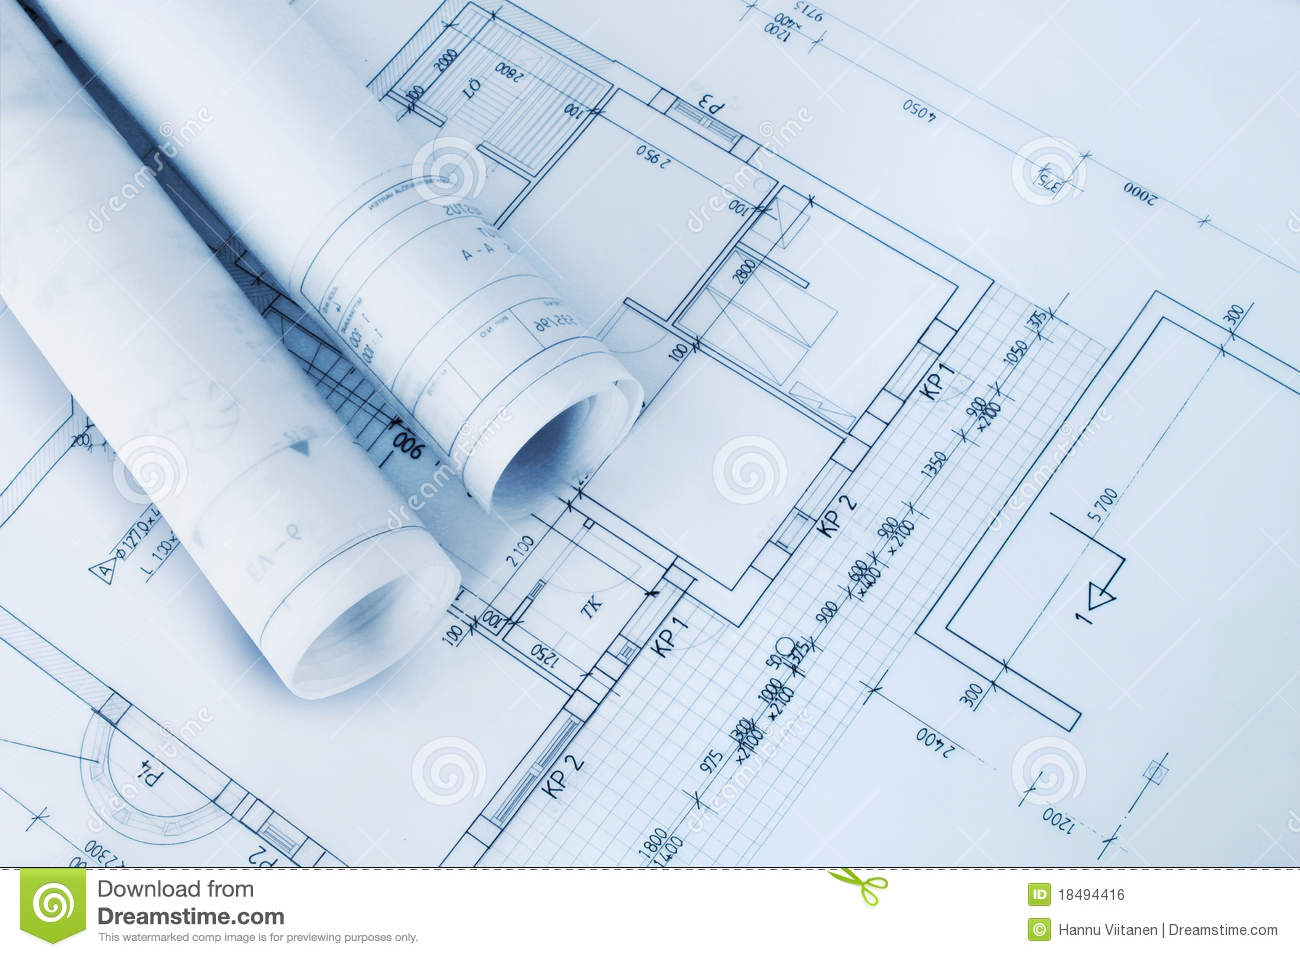 Construction plan blueprints stock photo image 18494416 for Building plans images